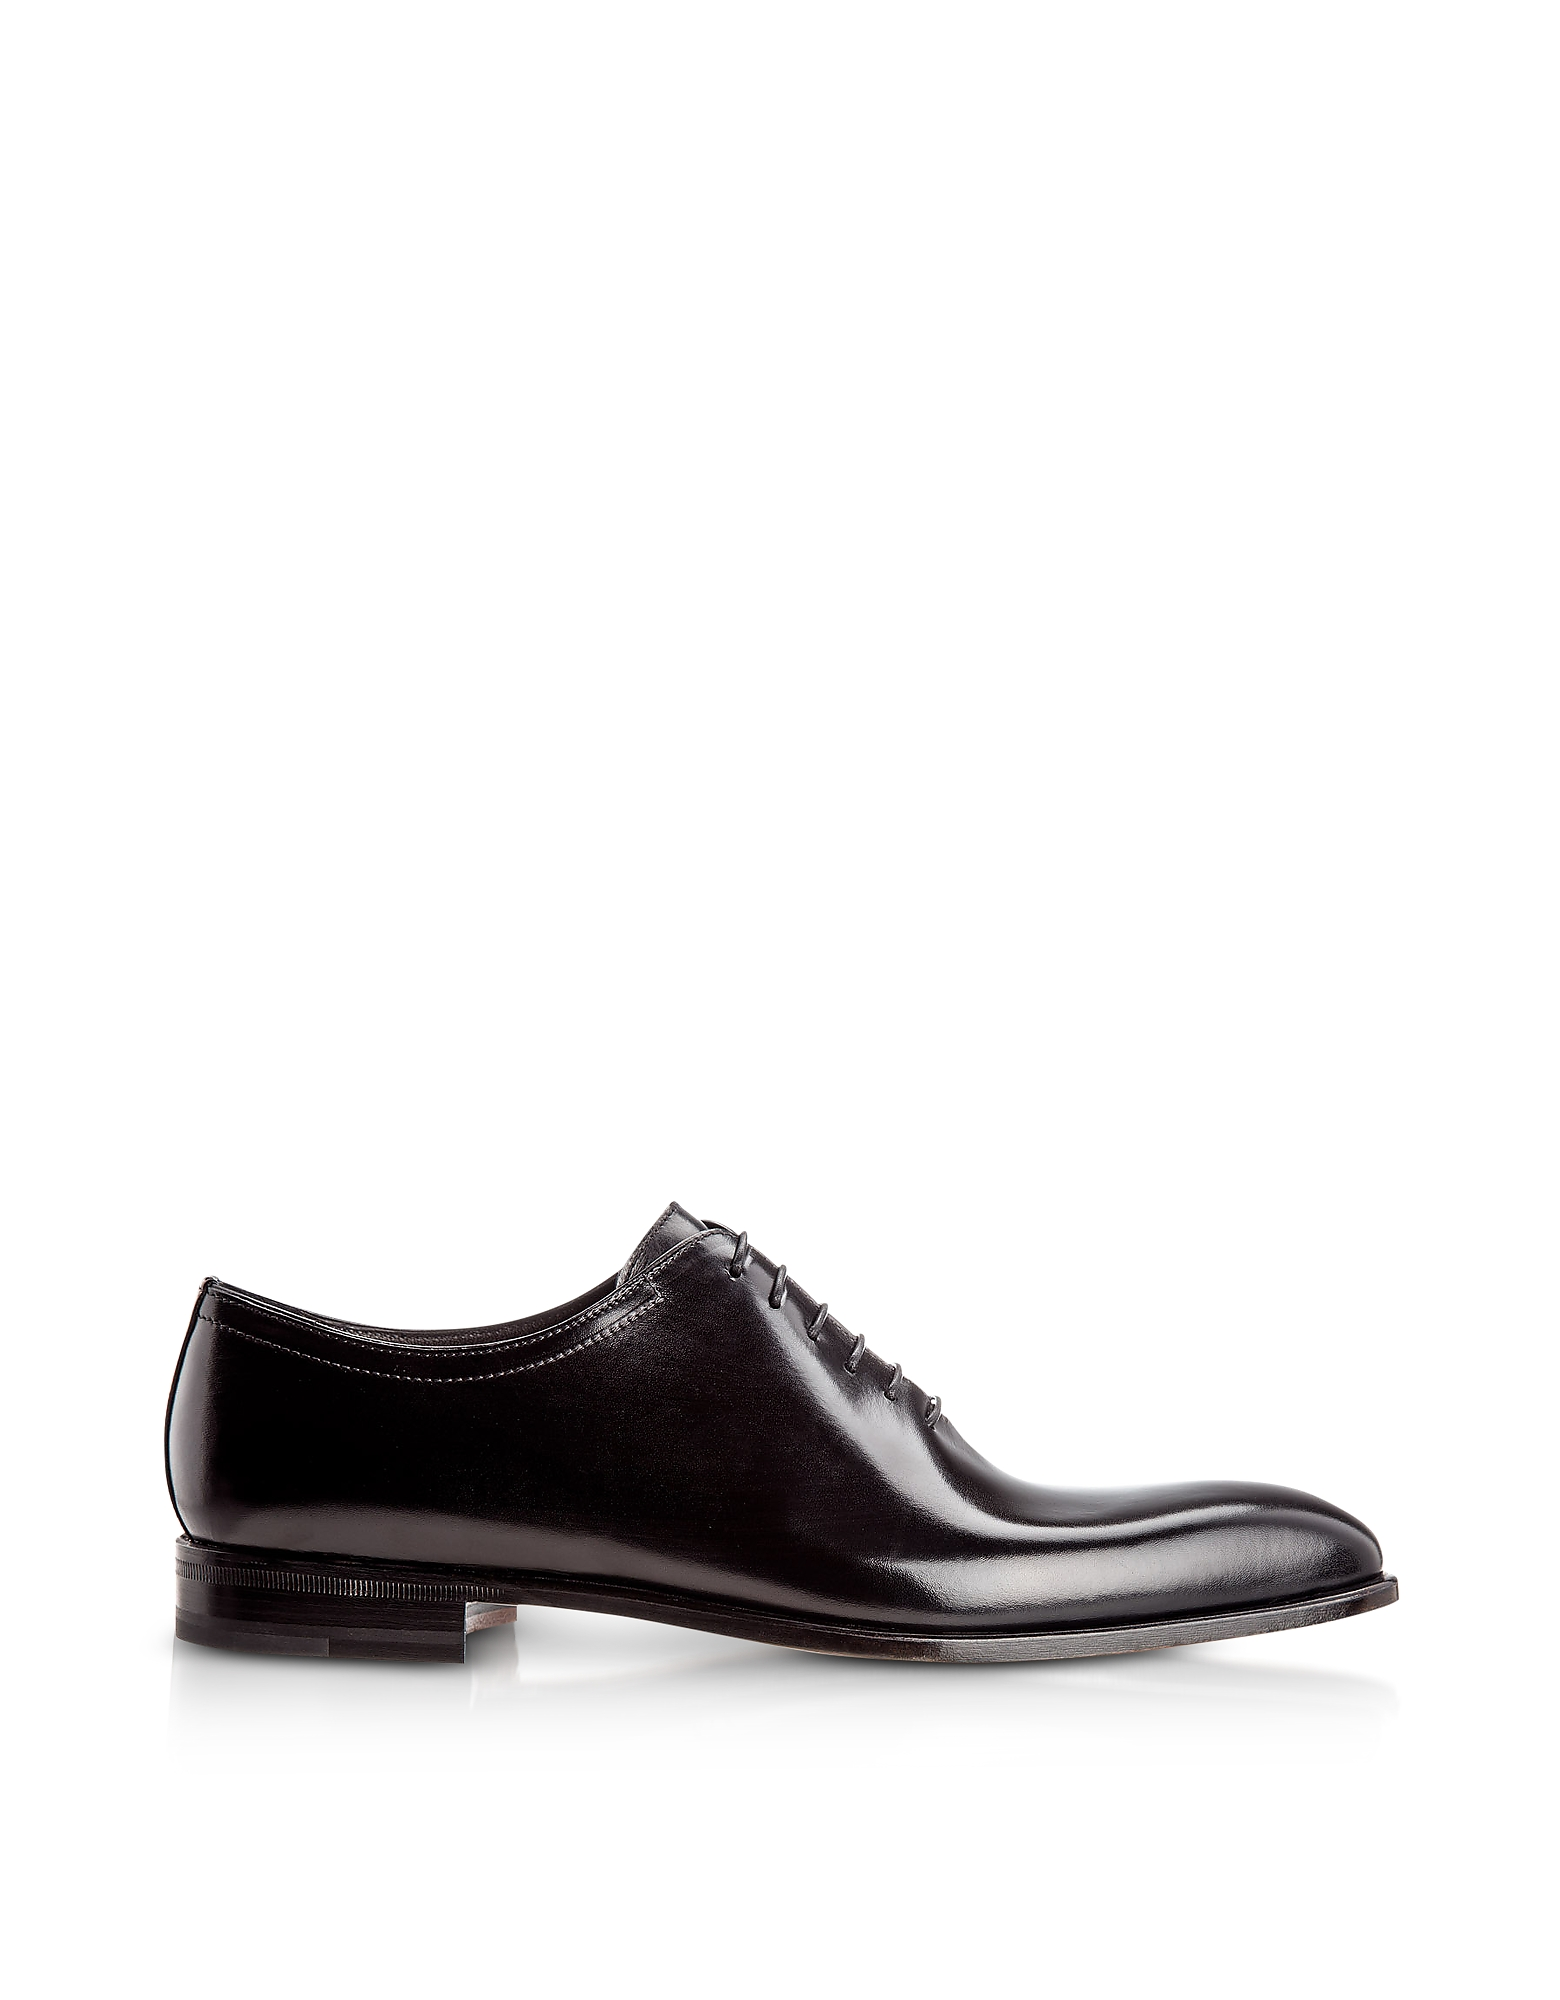 Moreschi Designer Shoes, Montreal Black Antiqued Calfskin Oxford Shoes